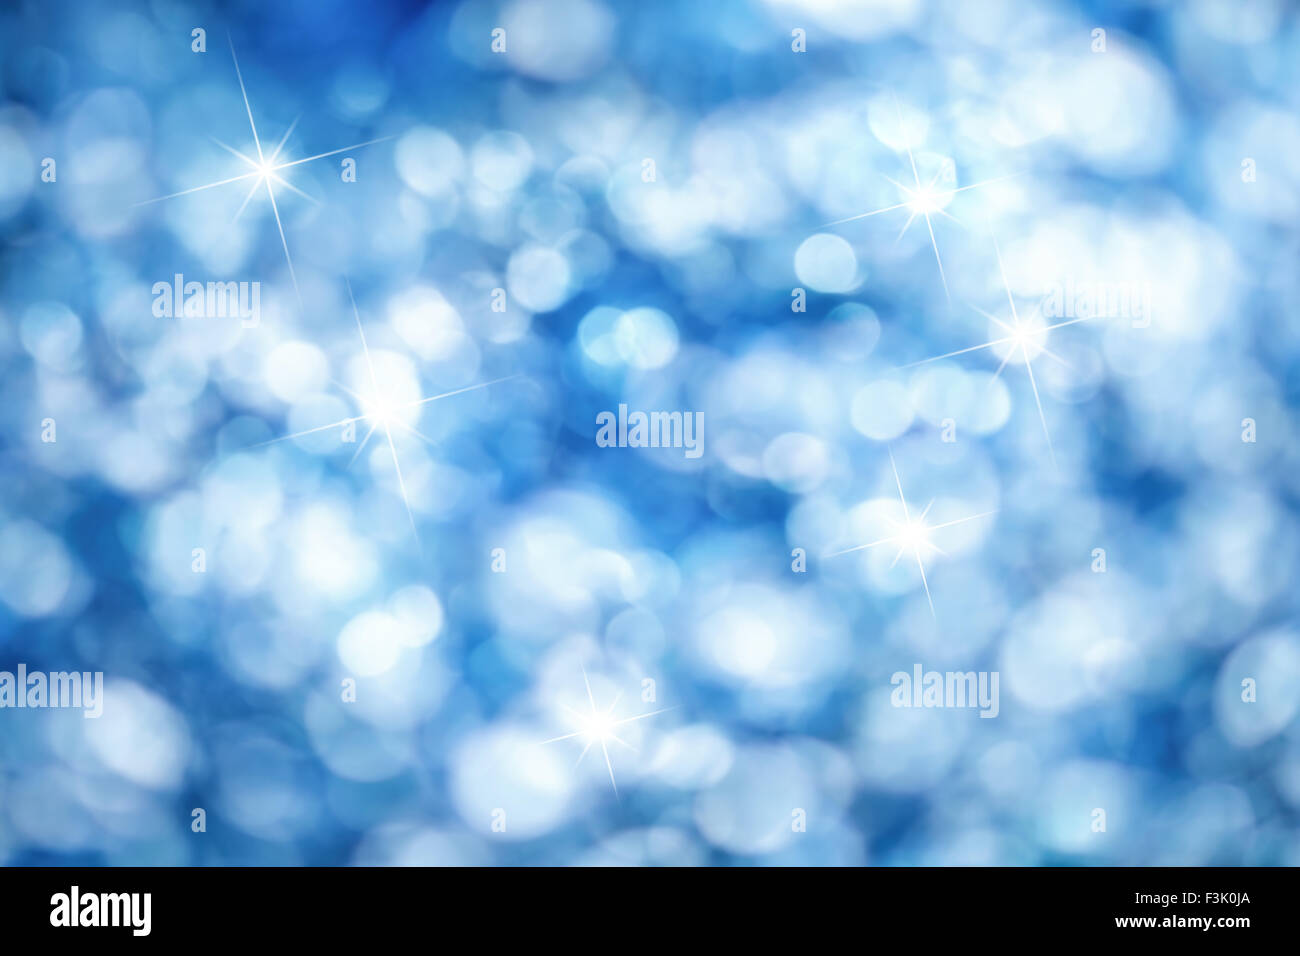 Out of focus lights creating a blue bokeh background with bright highlights, ideal for Christmas - Stock Image